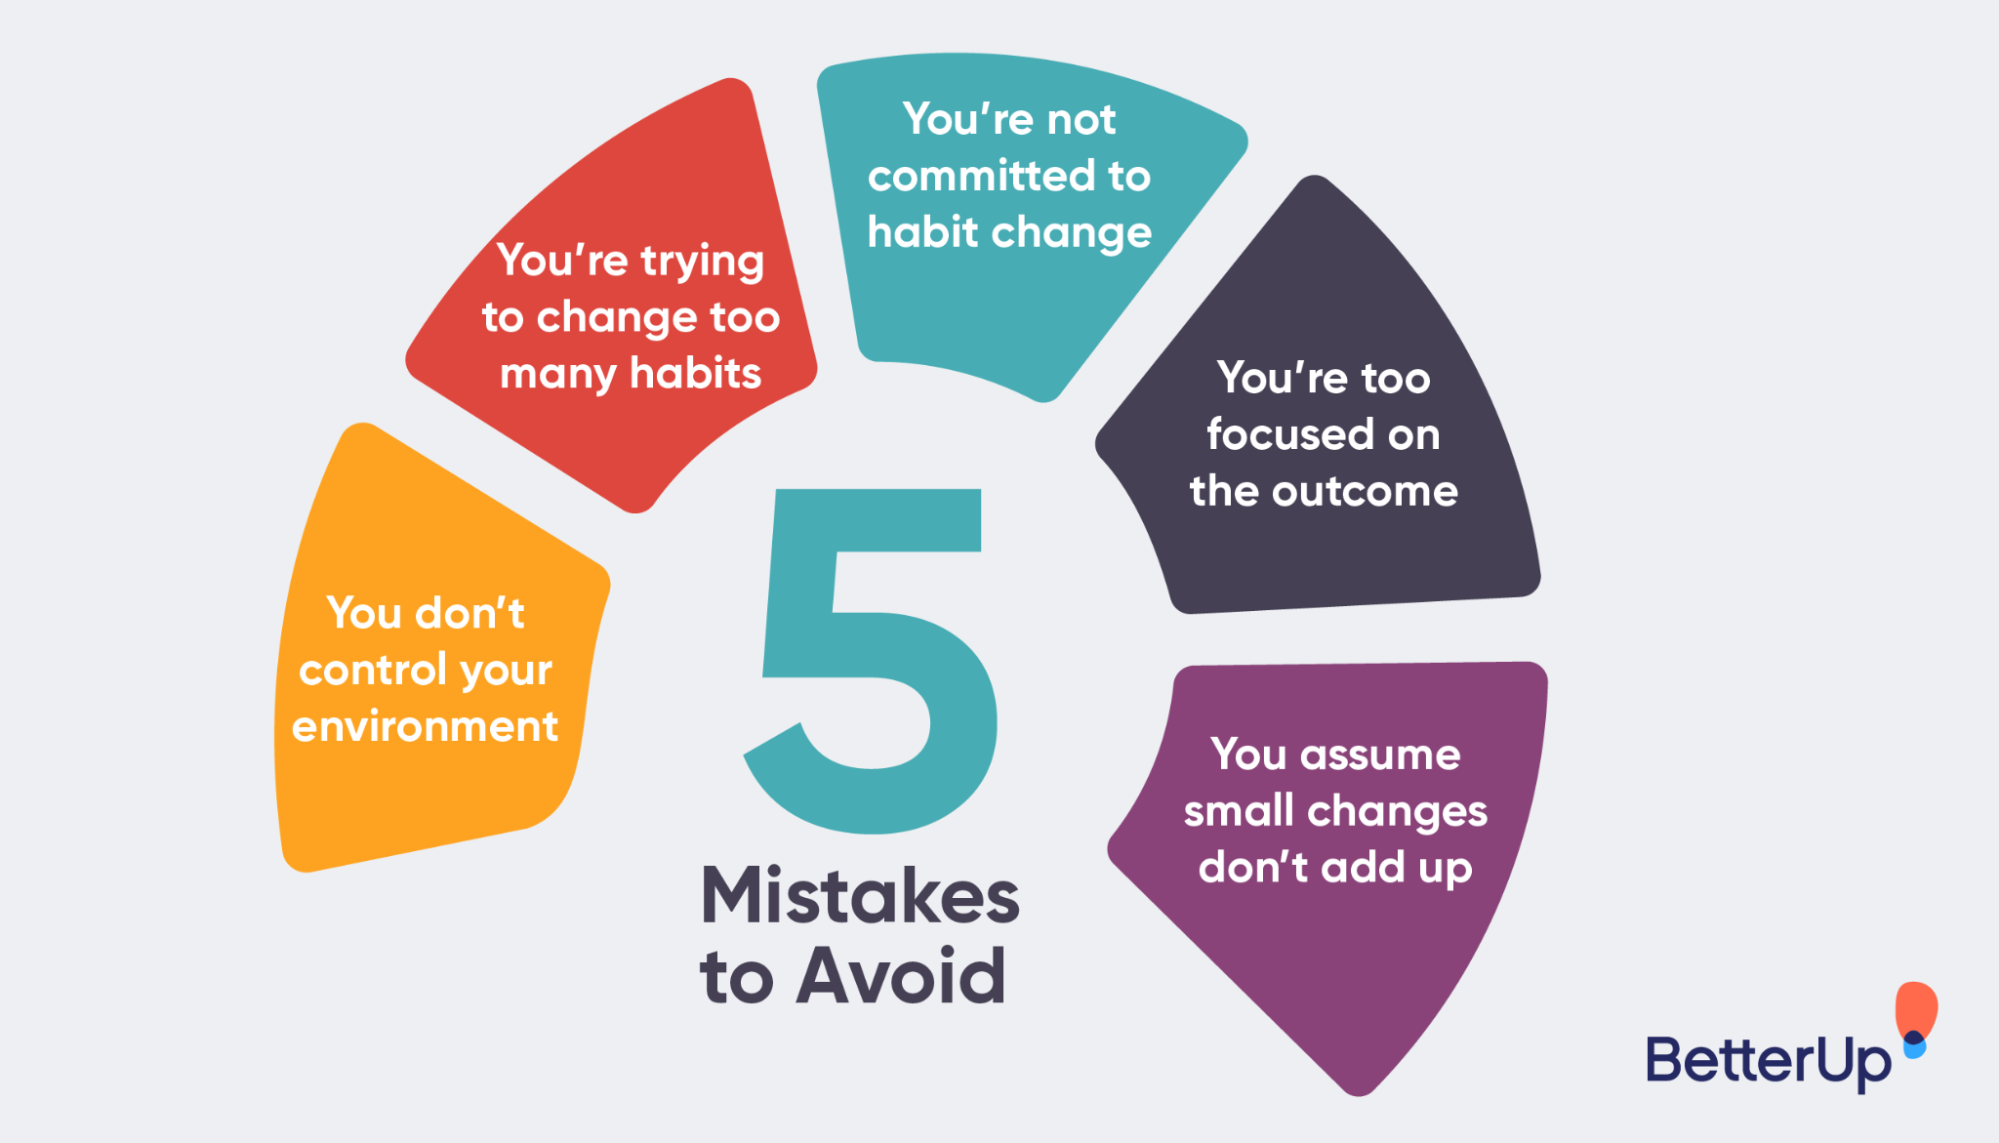 infographic-mistakes-to-avoid-building-habits